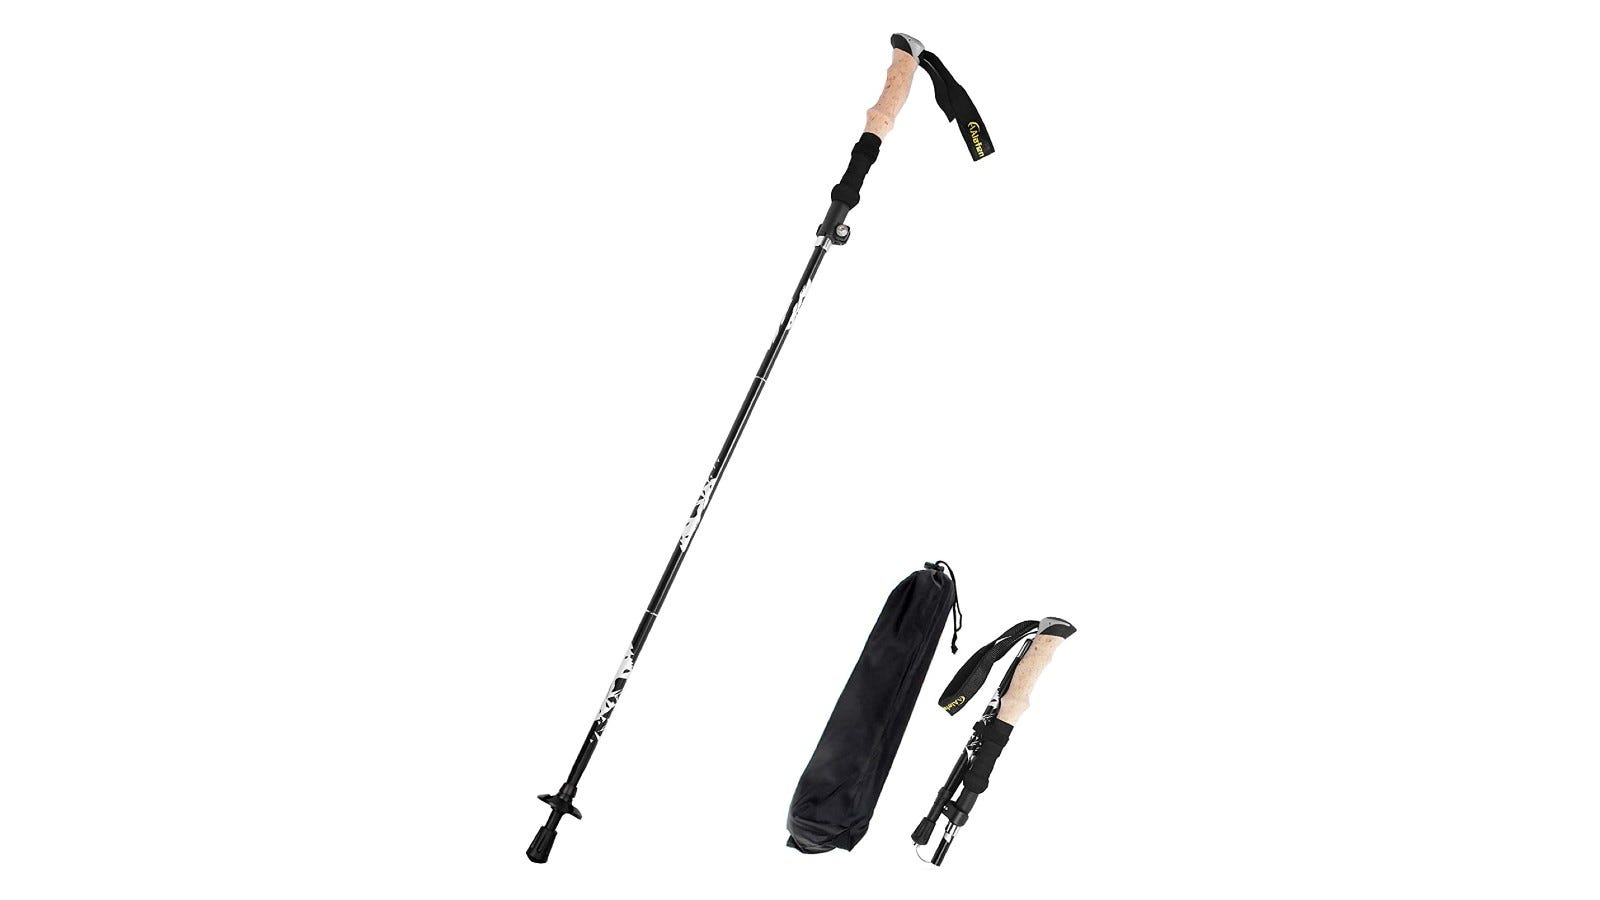 a set of collapsible hiking poles with cork handles